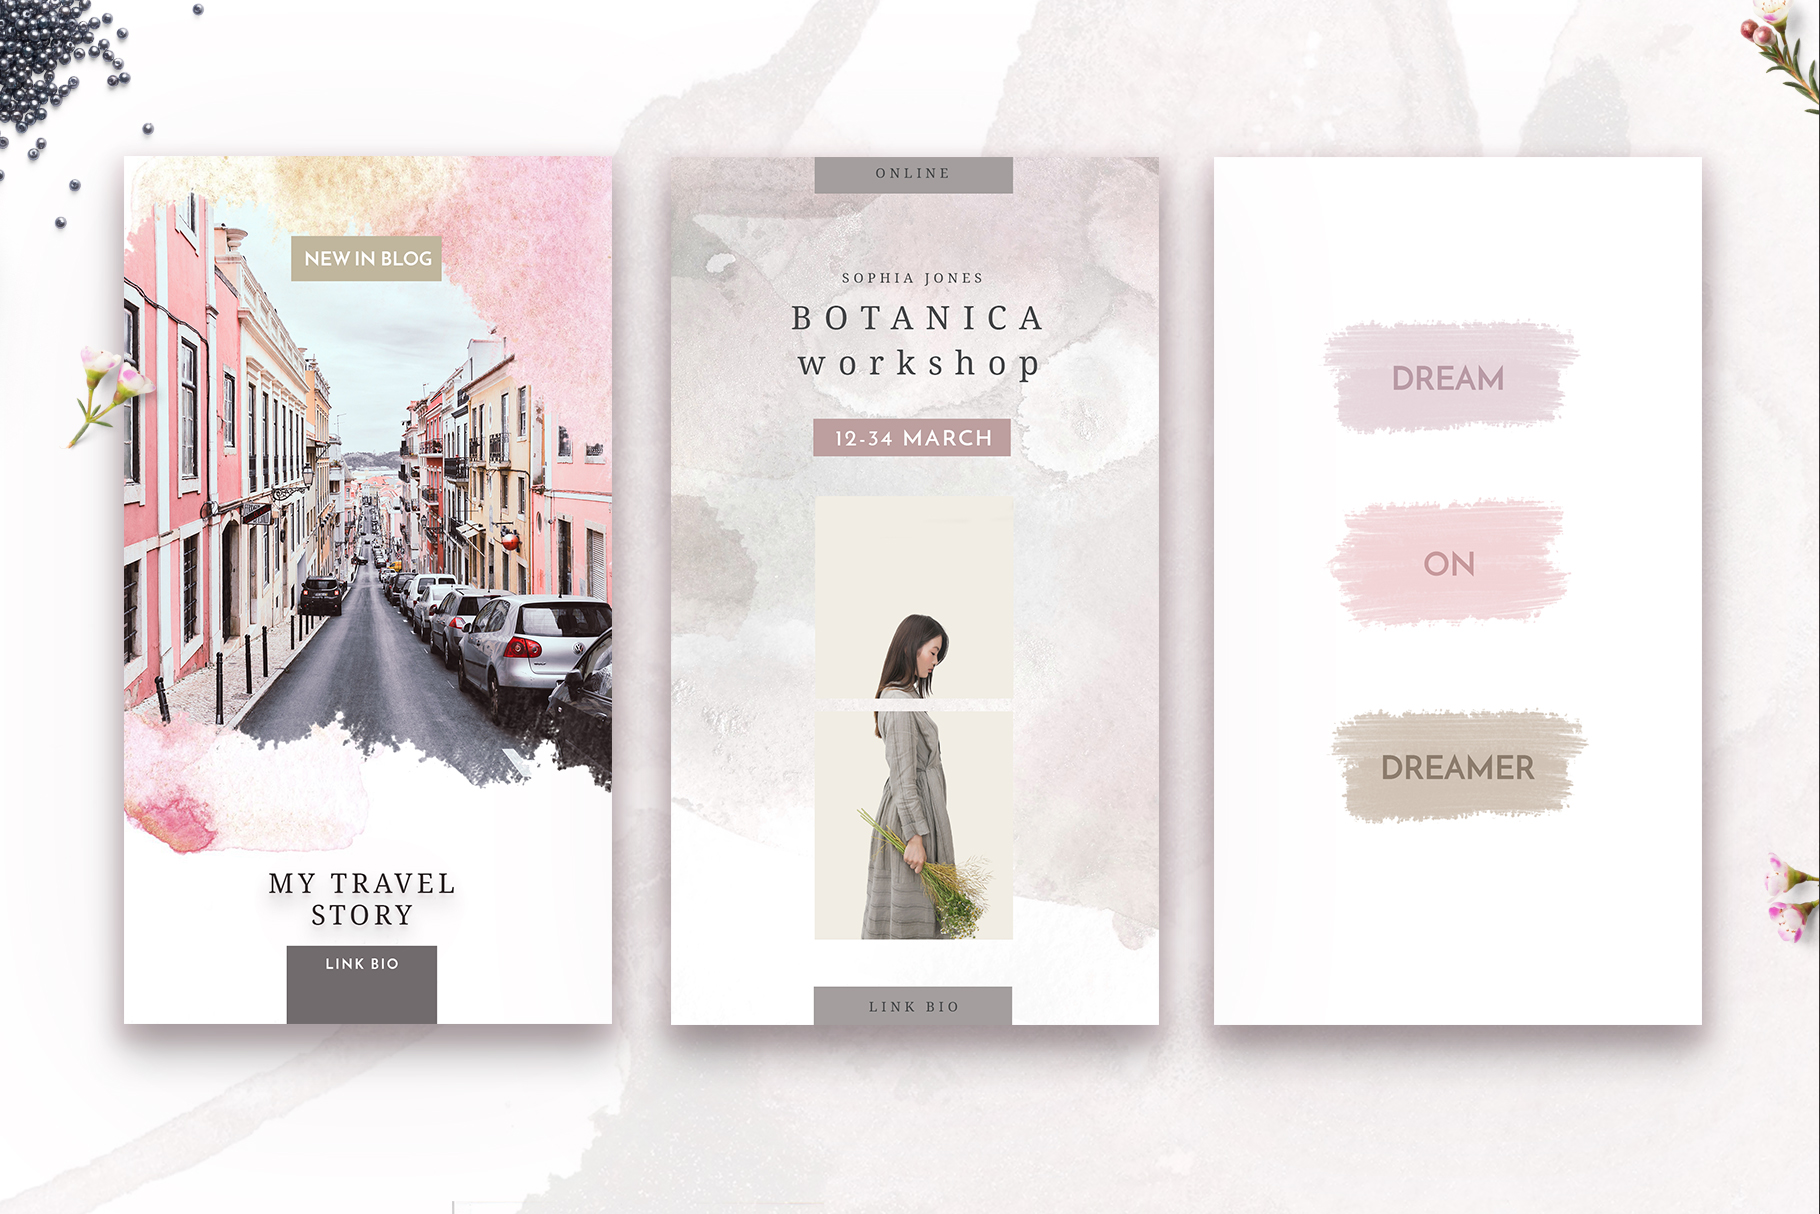 Animated Stories For Instagram